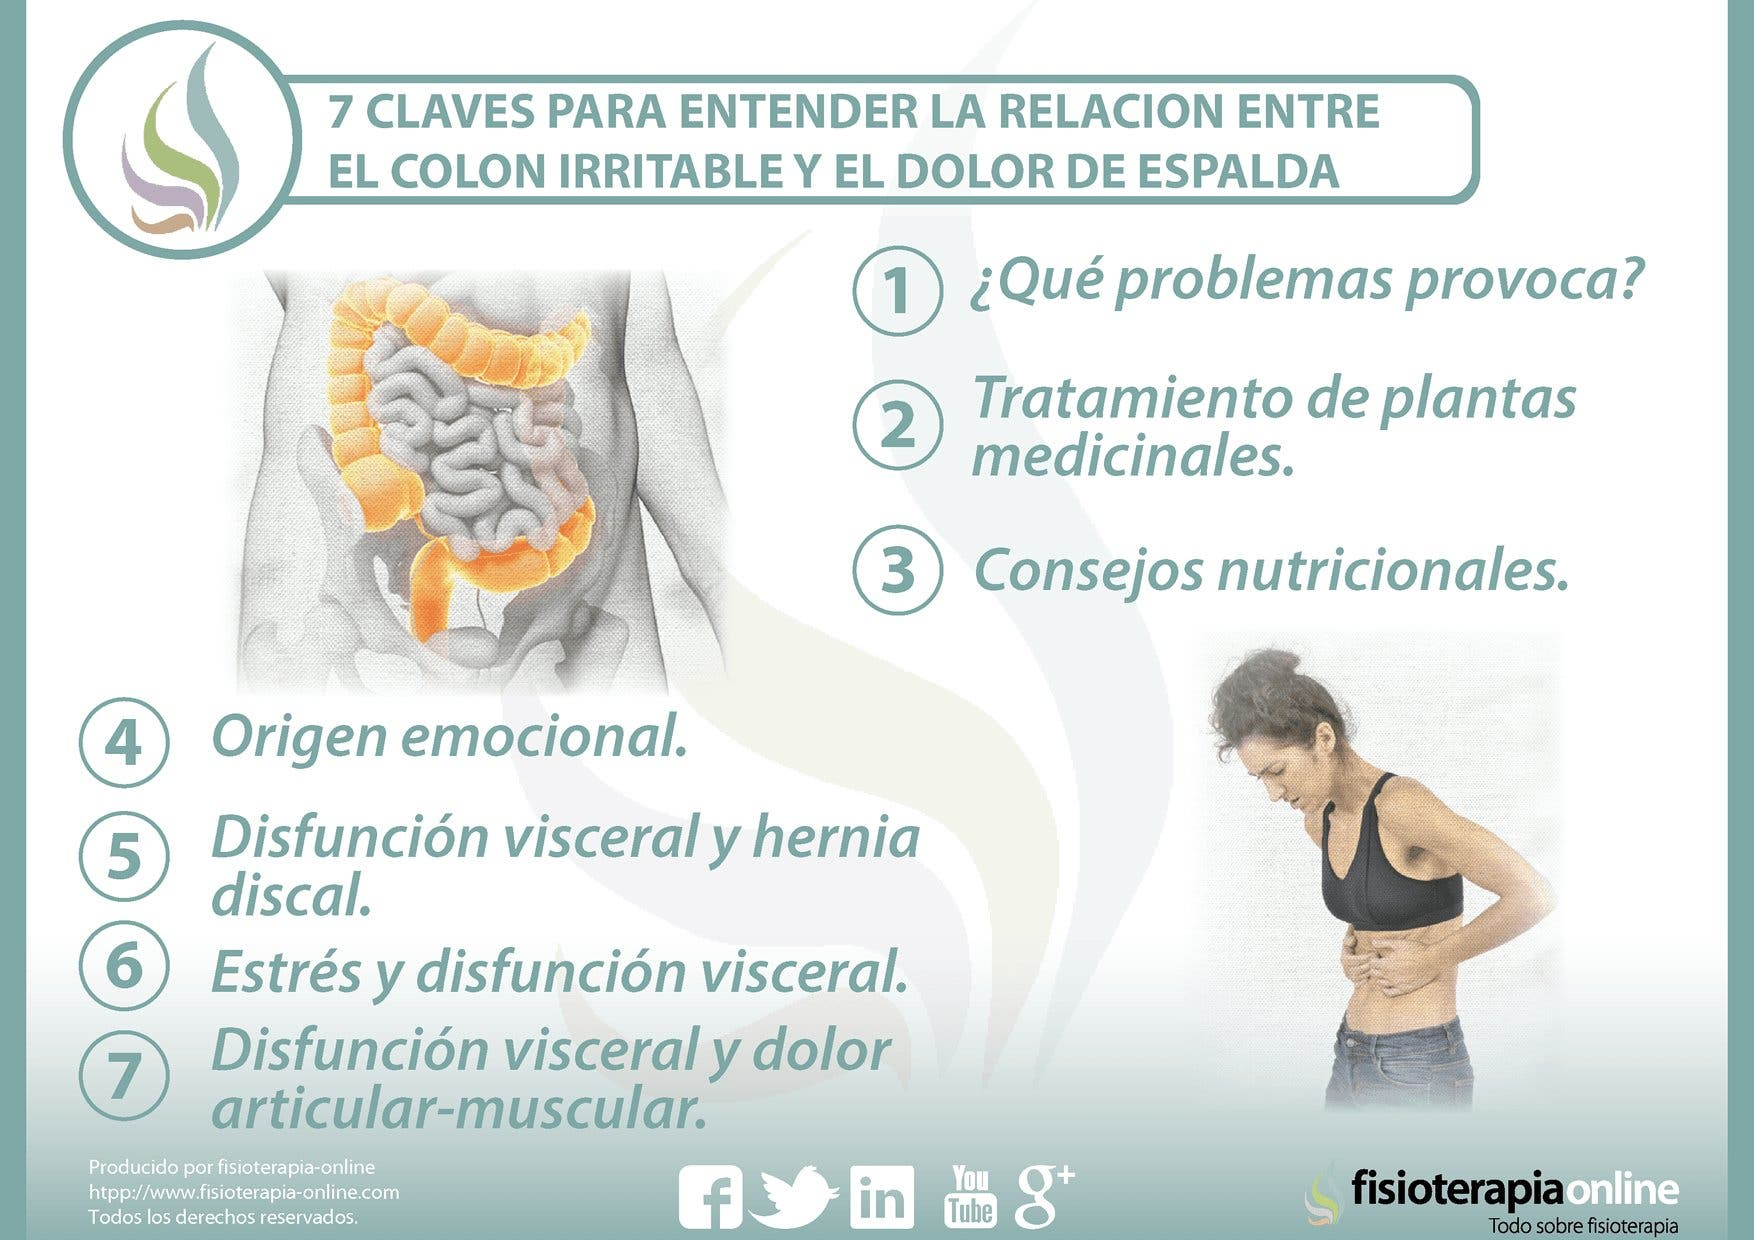 Cancer de colon da dolor de espalda